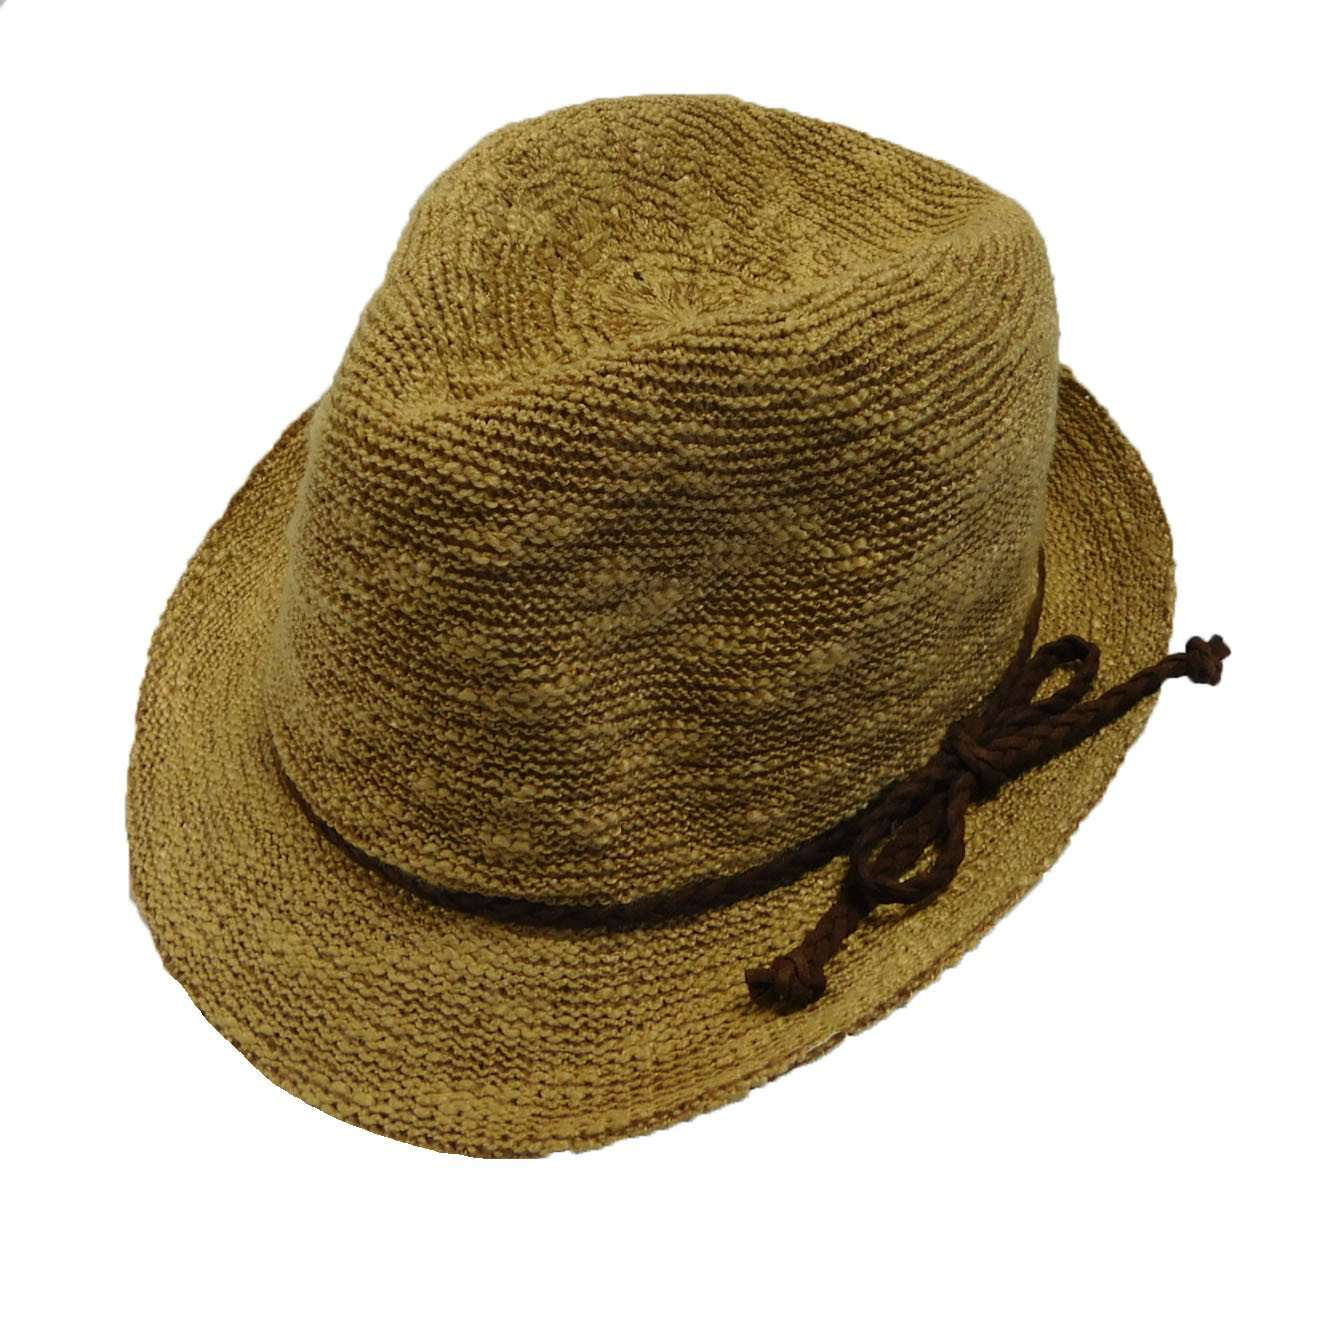 Kid's Knobby Knit Fedora - Camel - SetarTrading Hats